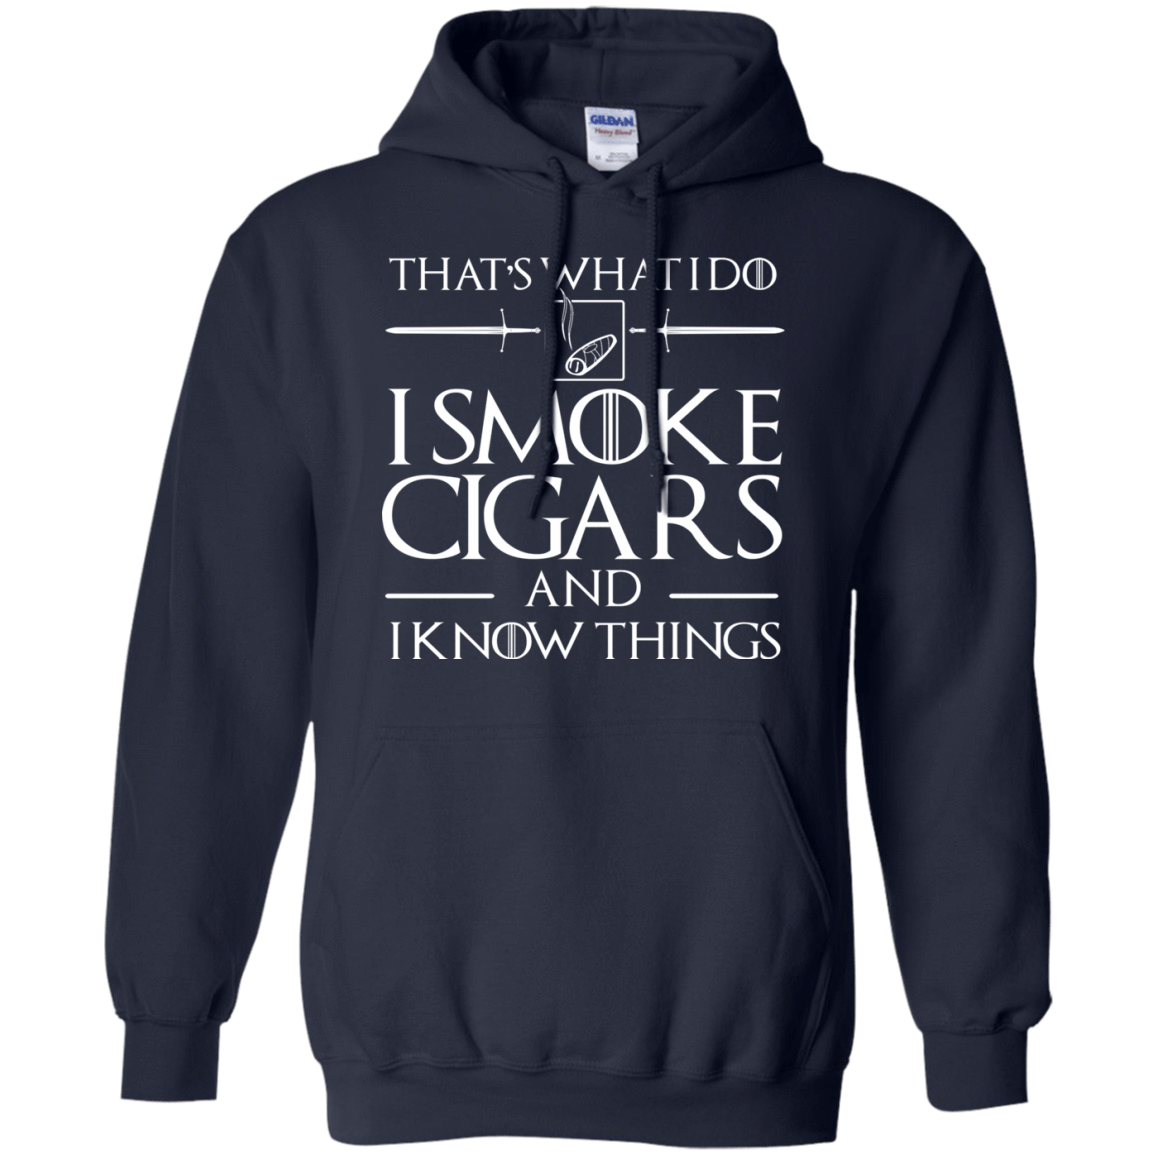 That's What I Do I Smoke Cigars And I Know Things 541-4742-73425241-23135 - Tee Ript